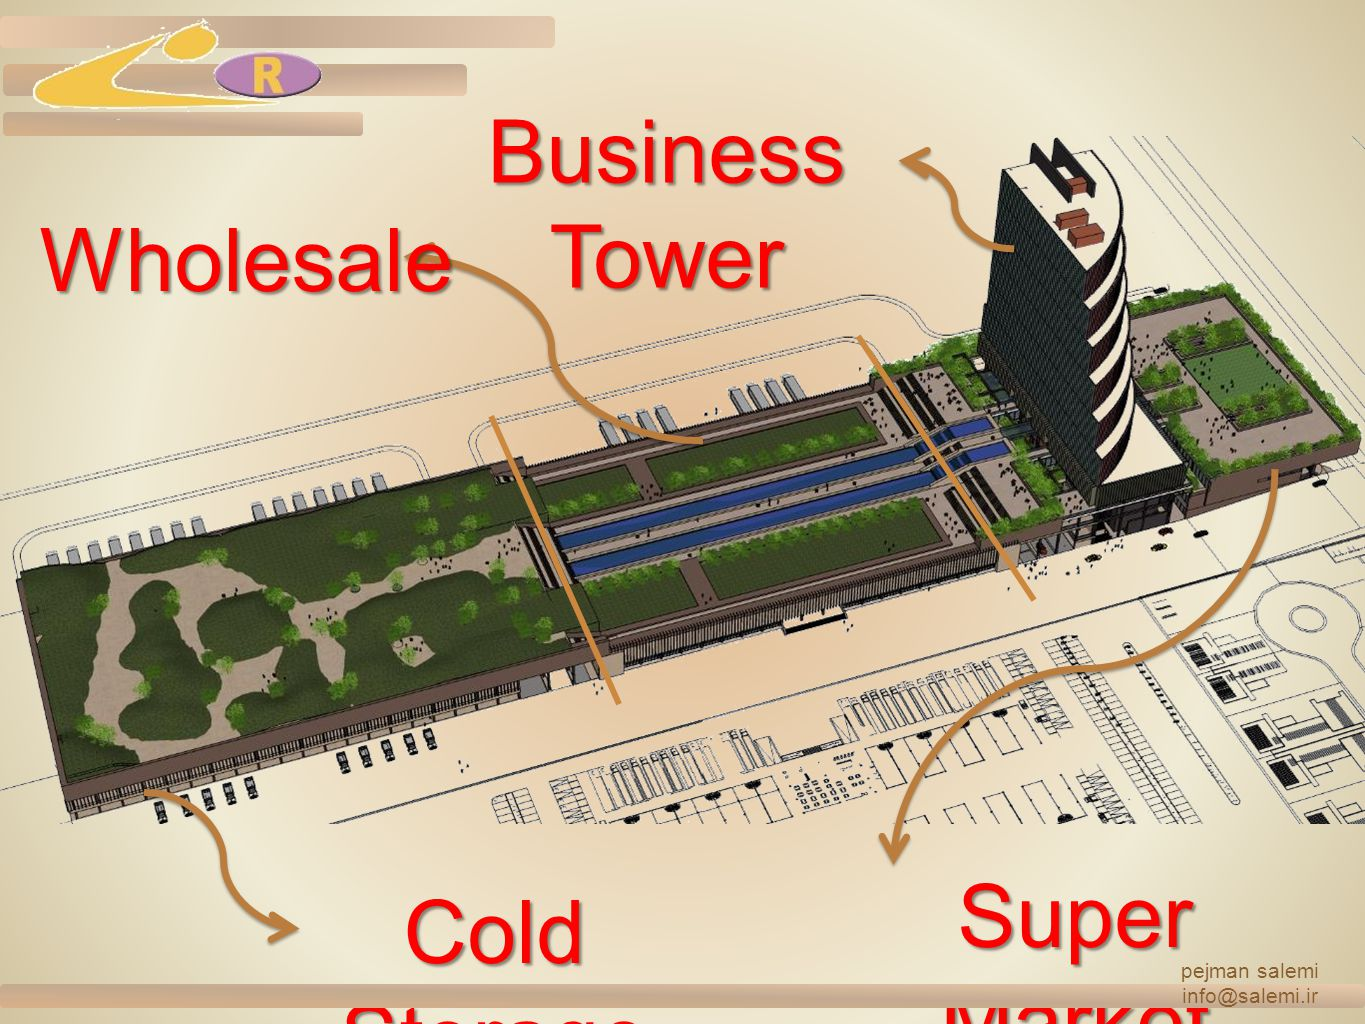 Business Tower Wholesale Super Market Cold Storage pejman salemi